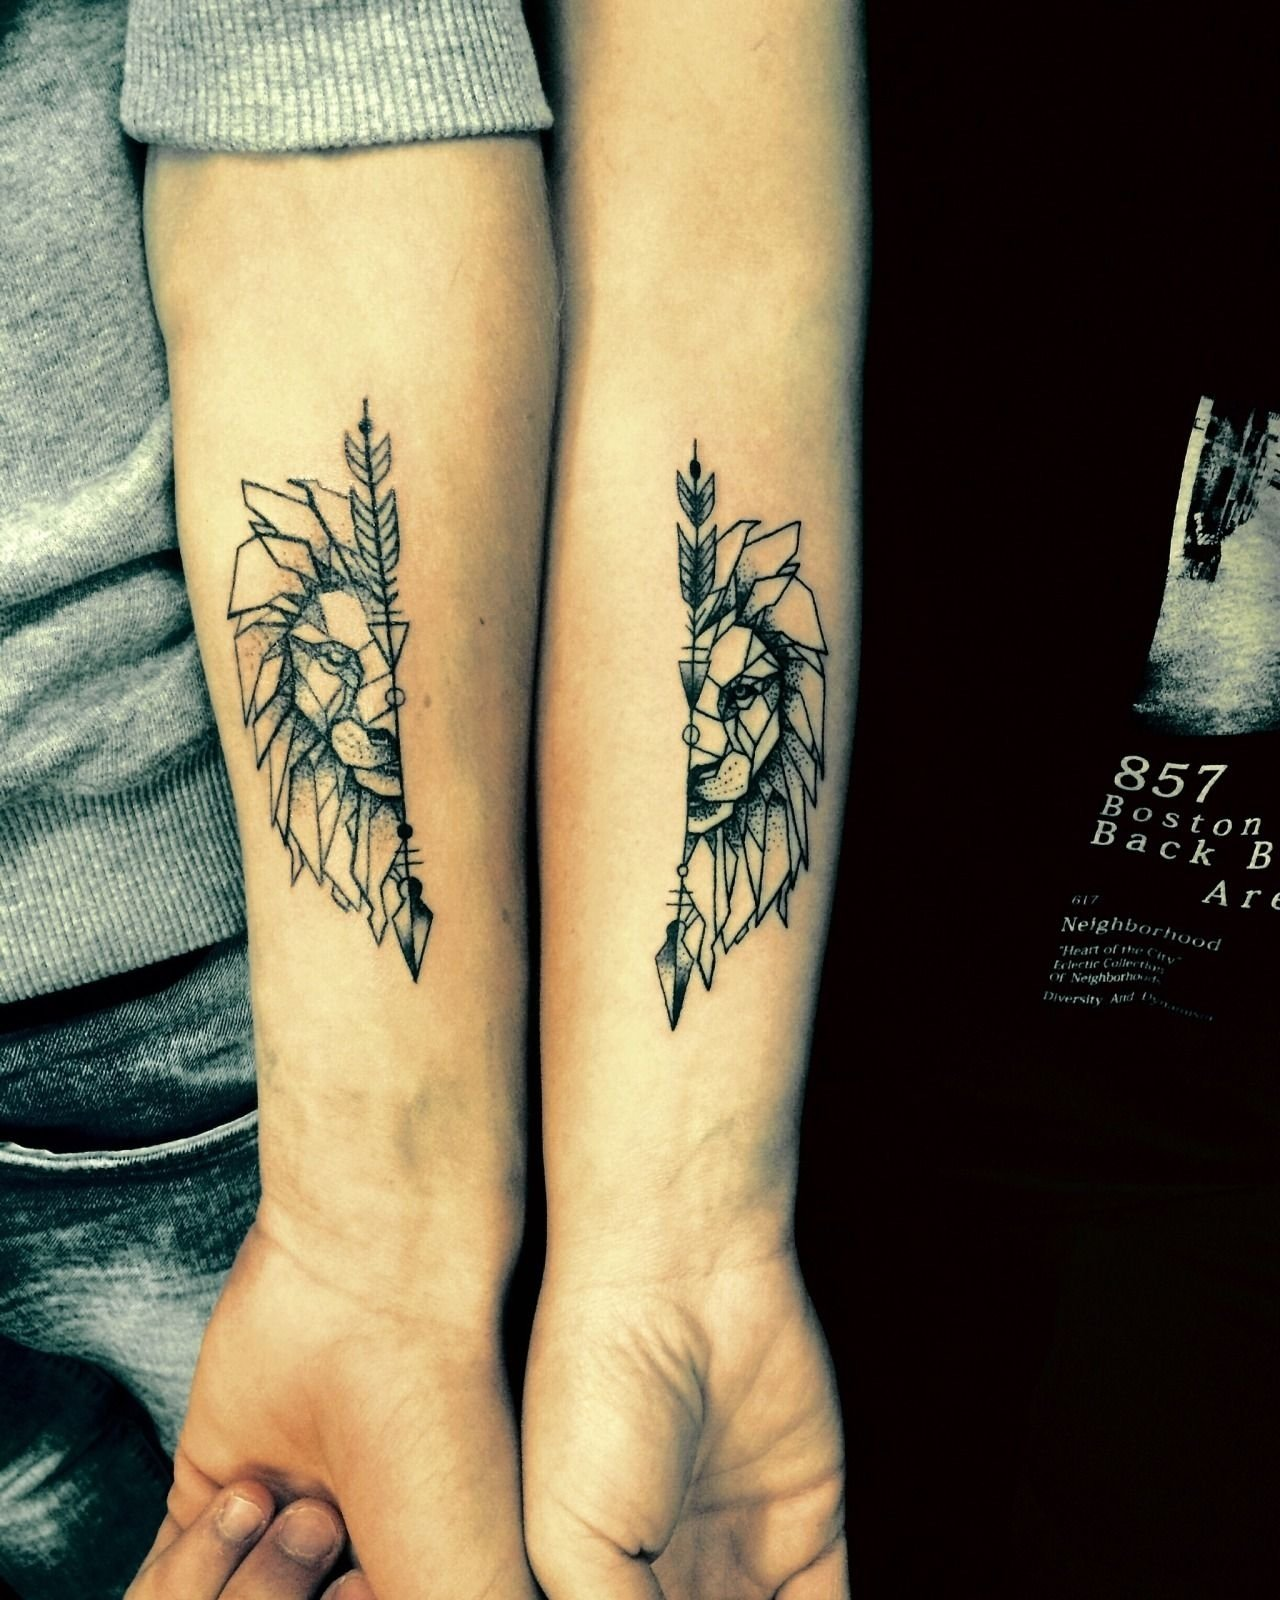 18 couple tattoo ideas that prove your love is here to stay